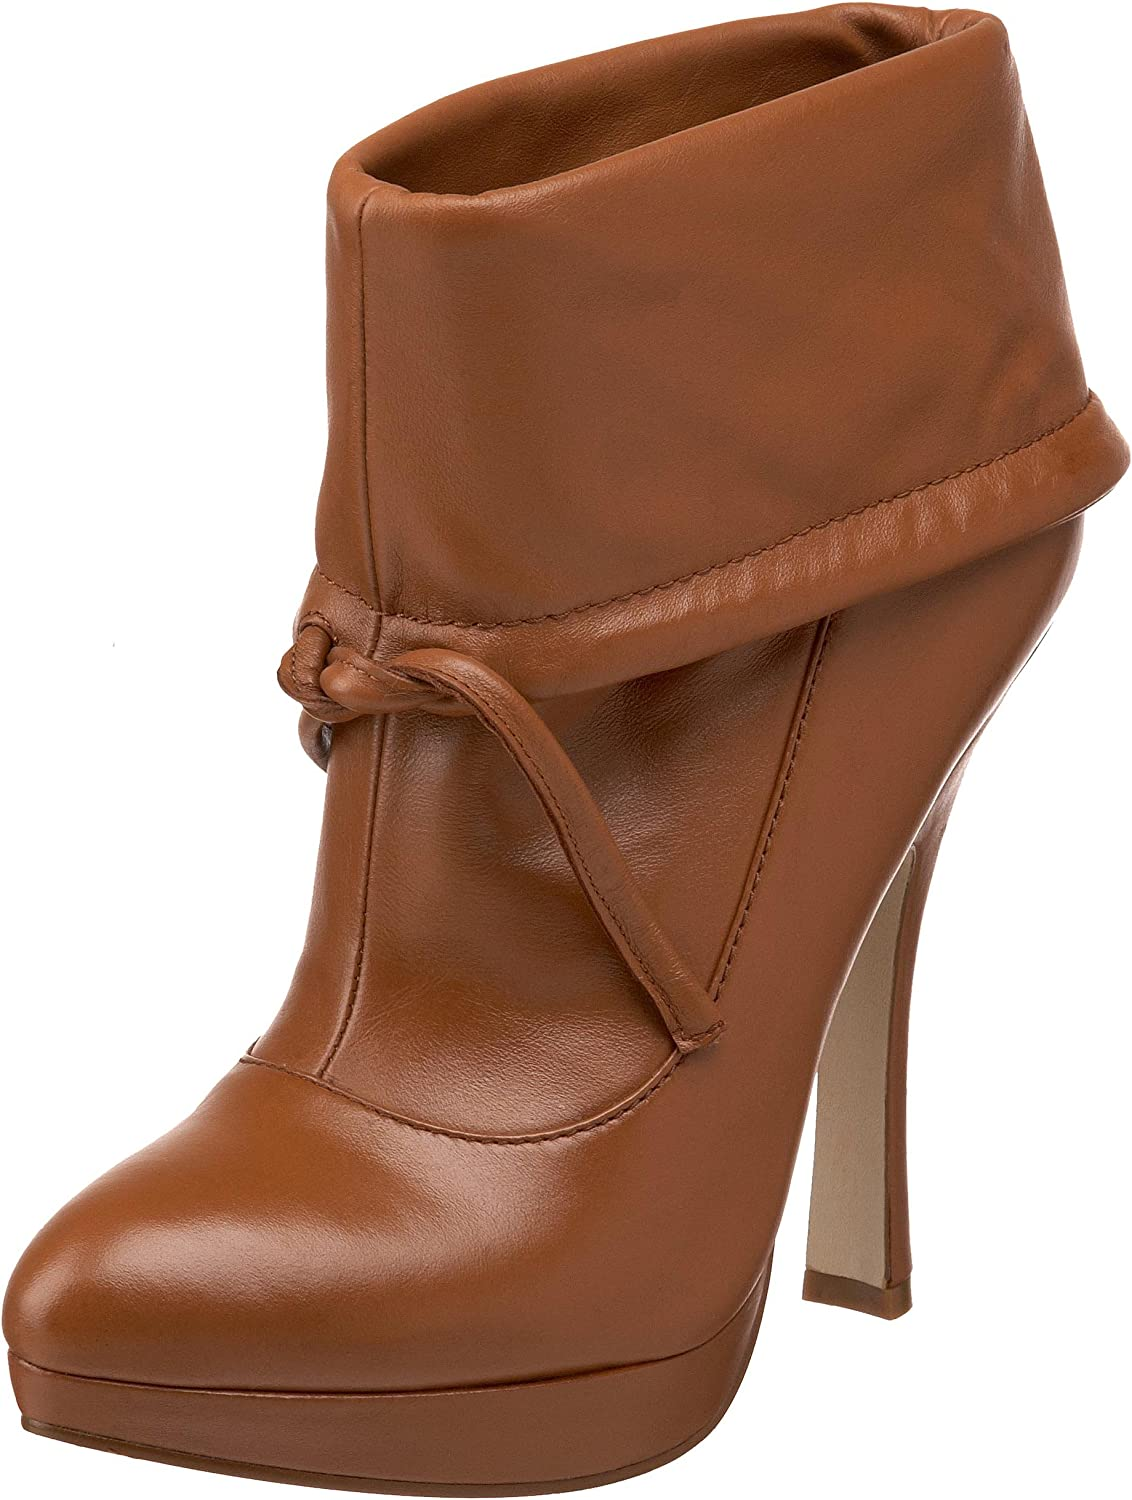 Boutique 9 Women's Meyer Ankle Boot